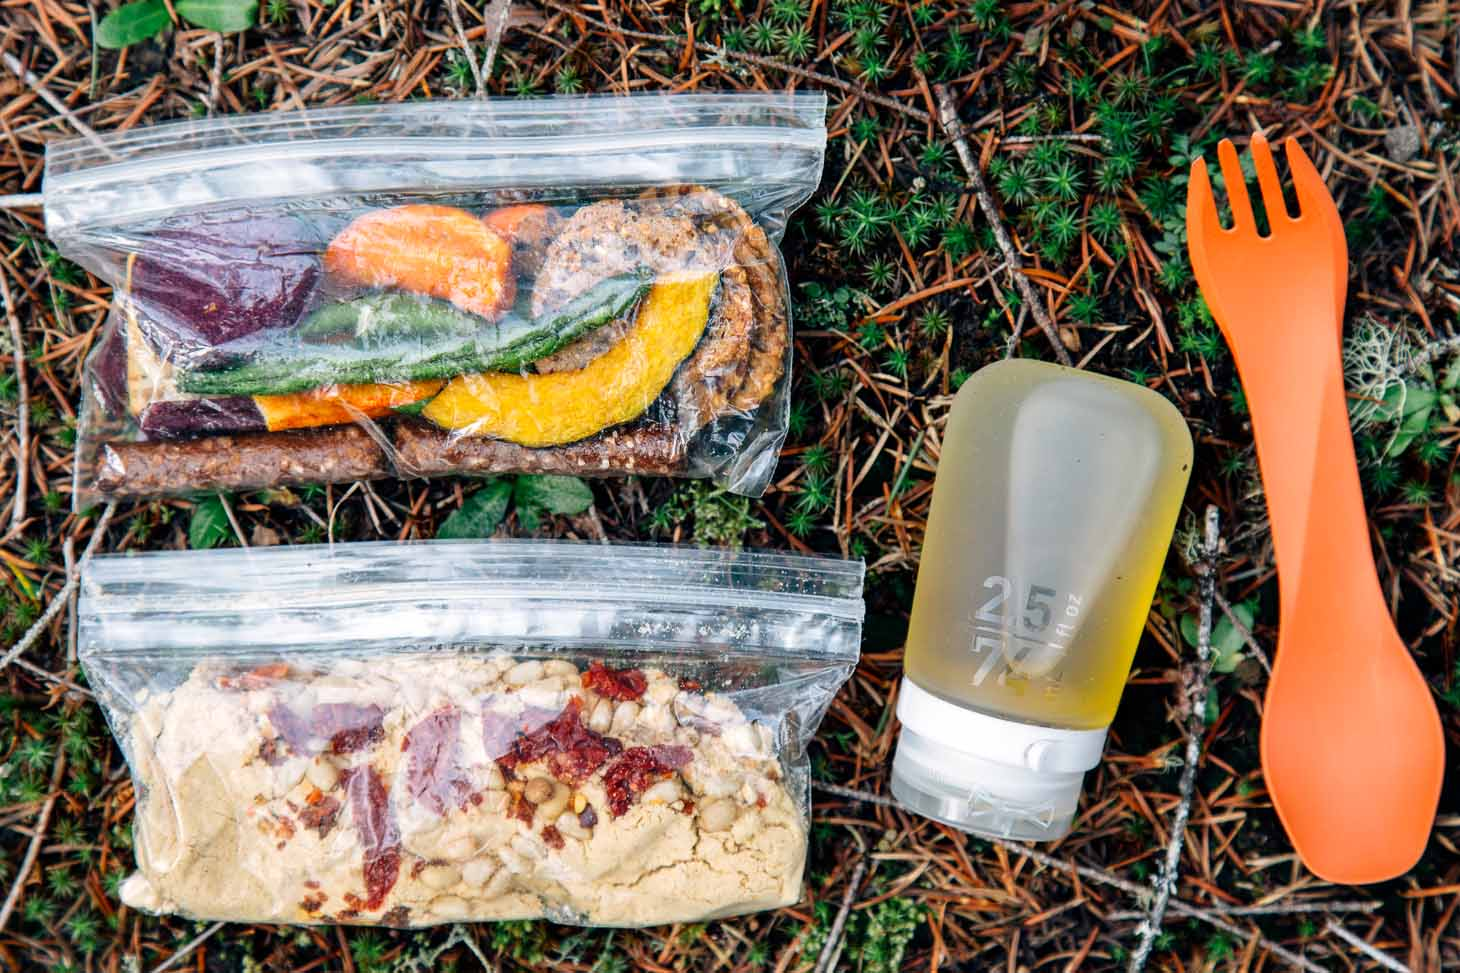 Ingredients for backpacking hummus in ziplock bags on a forest floor.